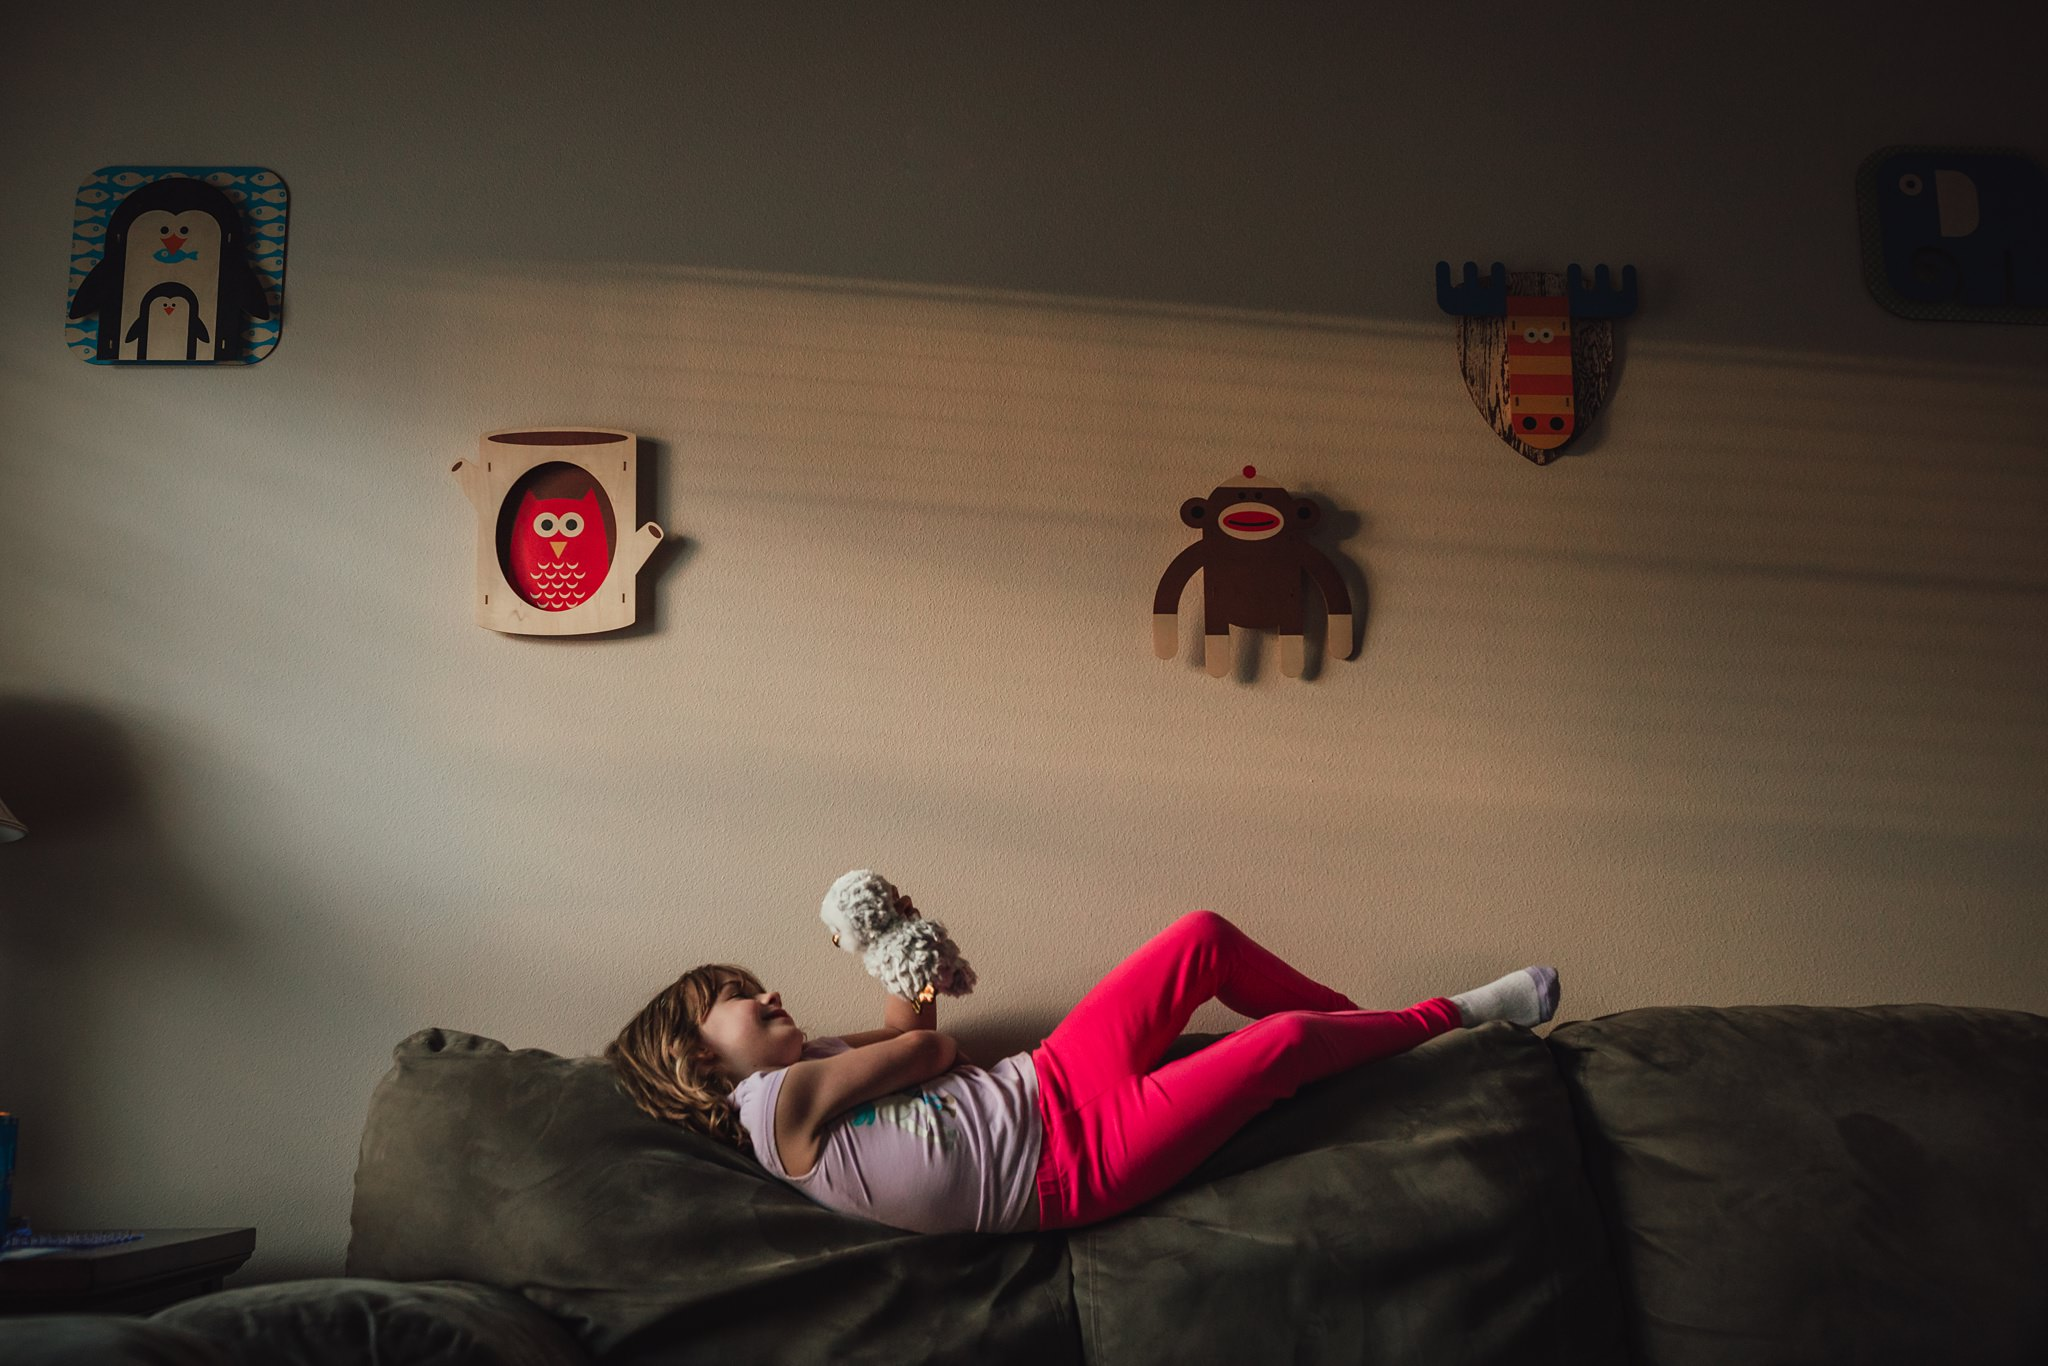 girl smiles at stuffed animal while lying on couch